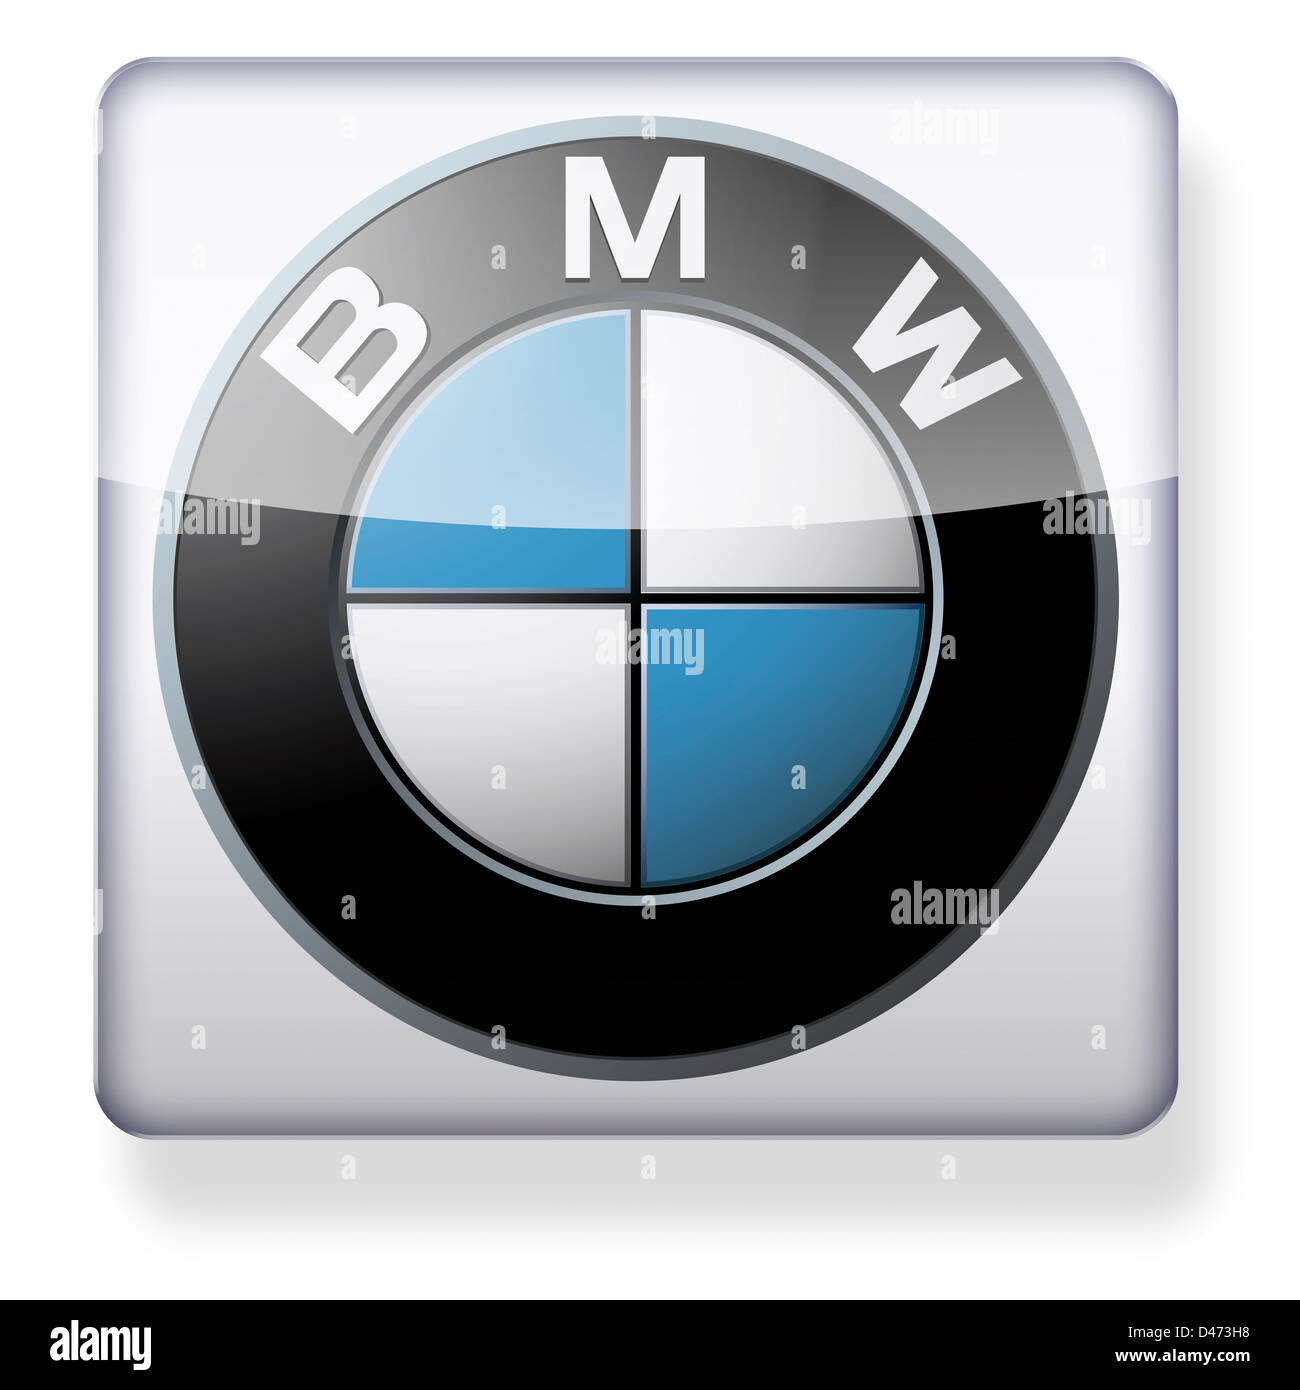 BMW logo as an app icon. Clipping path included. Stock Photo